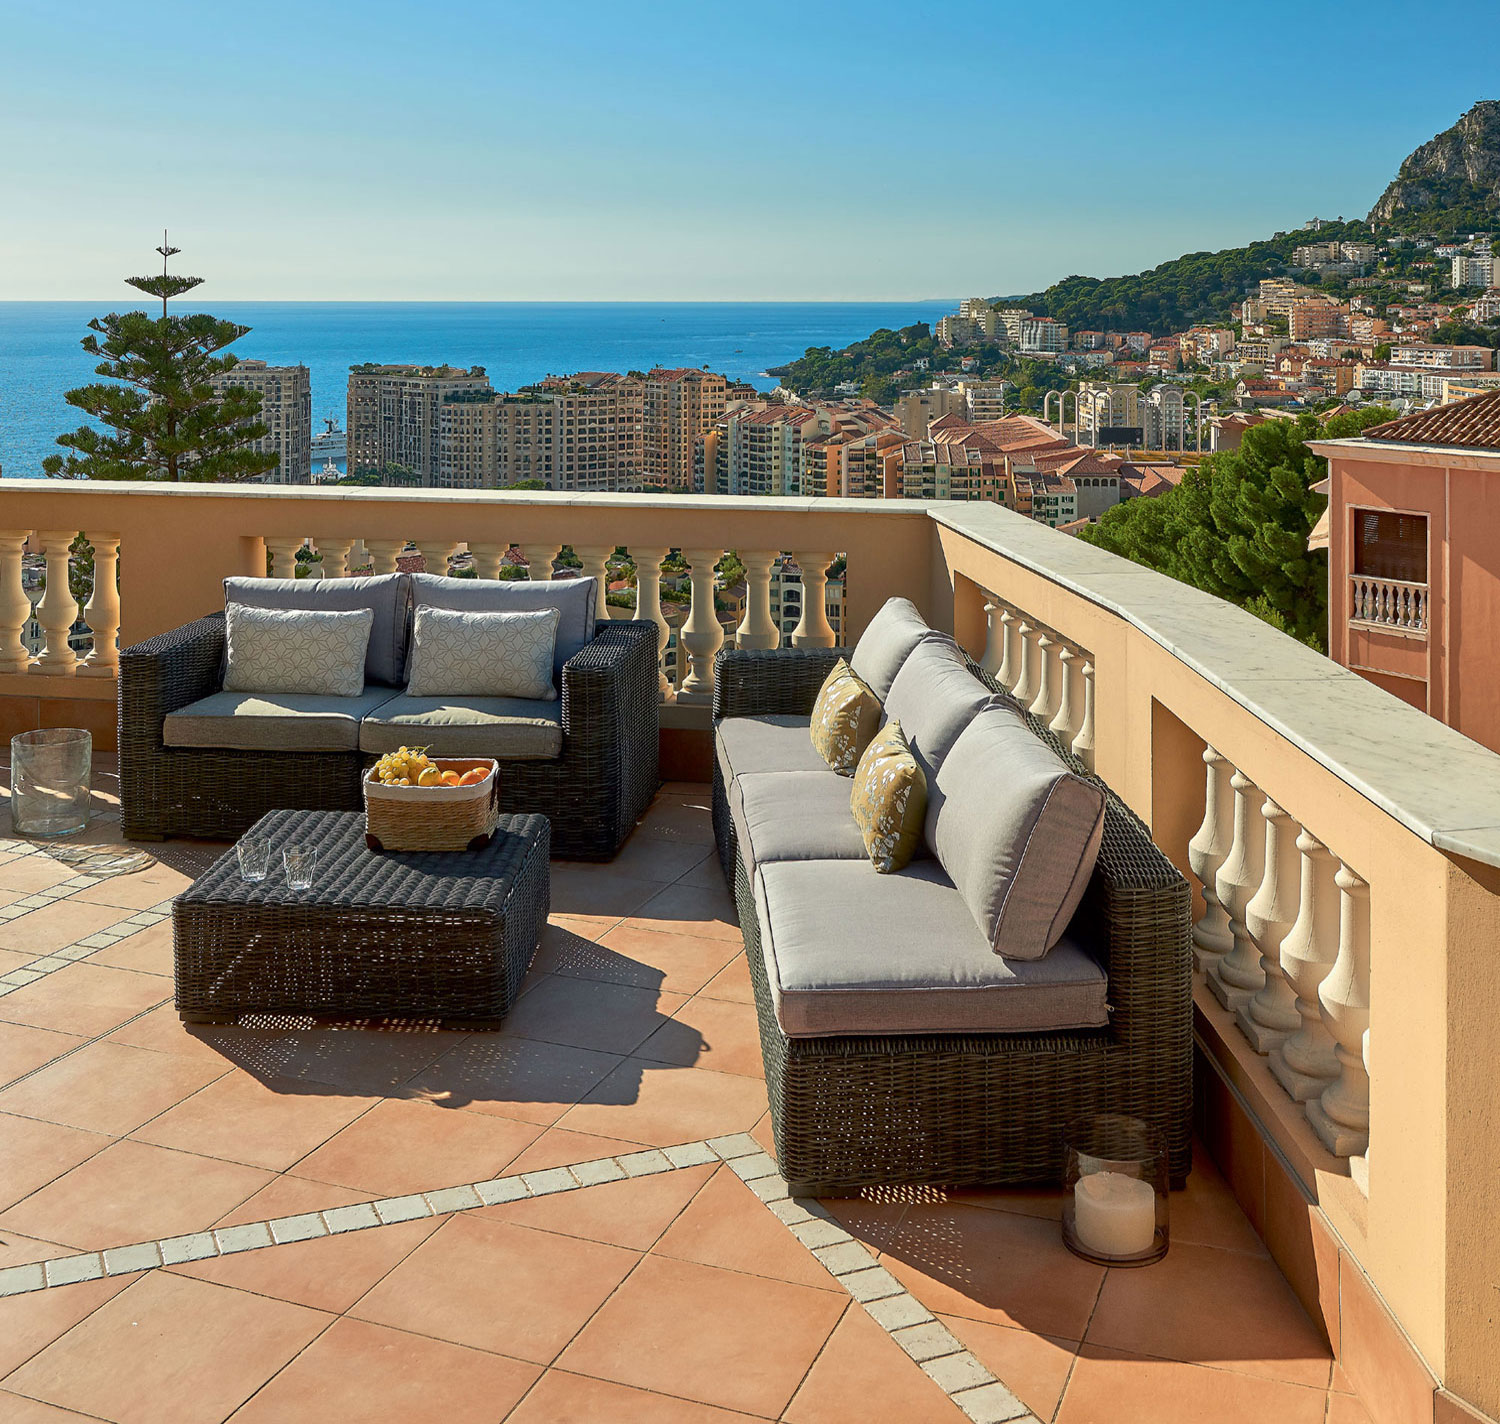 On the roof is the perfect terrace, ideal for alfresco dining and entertaining.